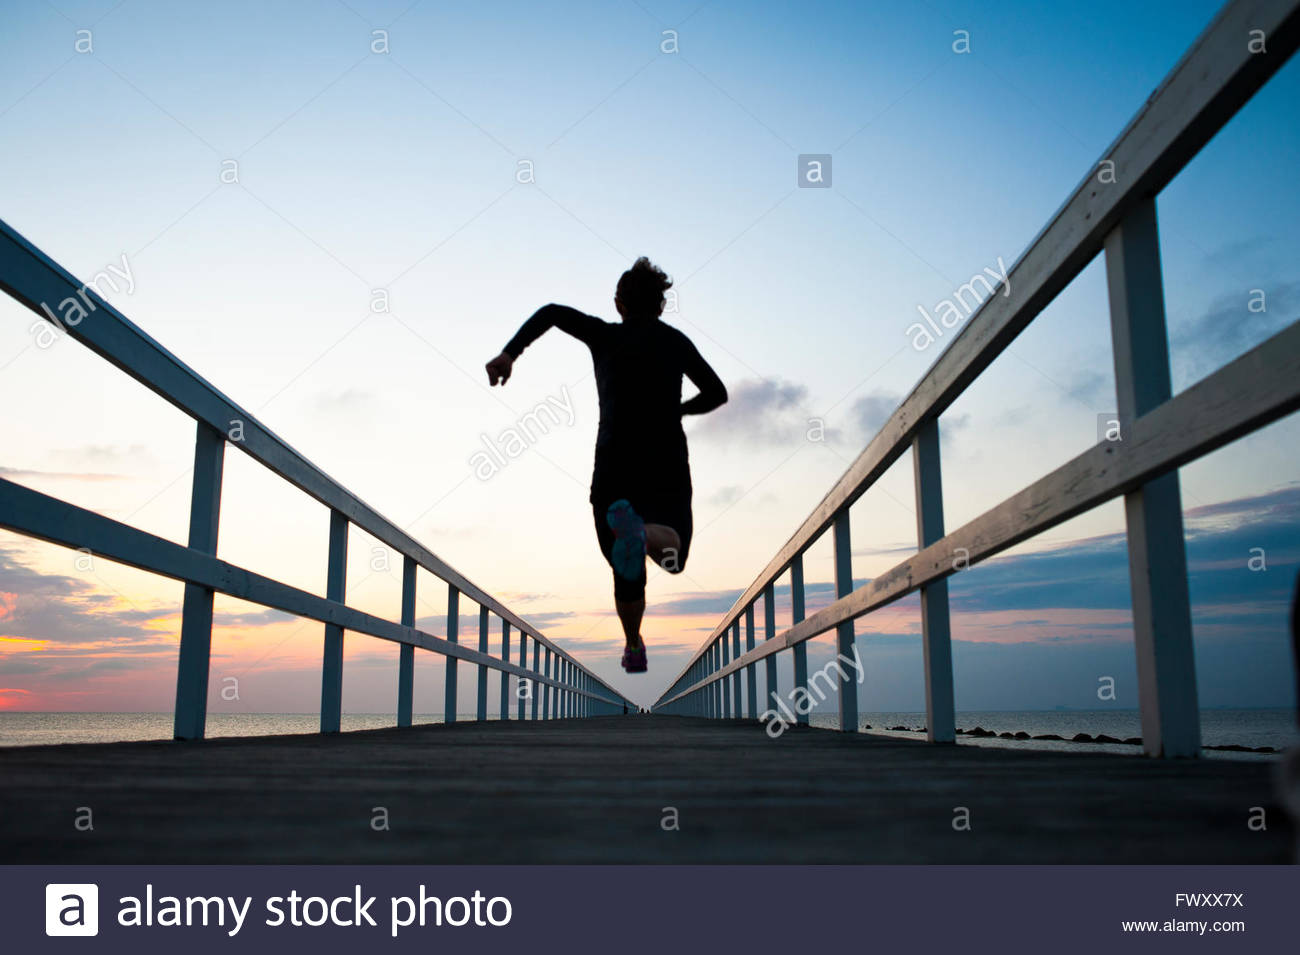 La Suède, Stockholm, Malmö, young woman running on pier at sunset Photo Stock